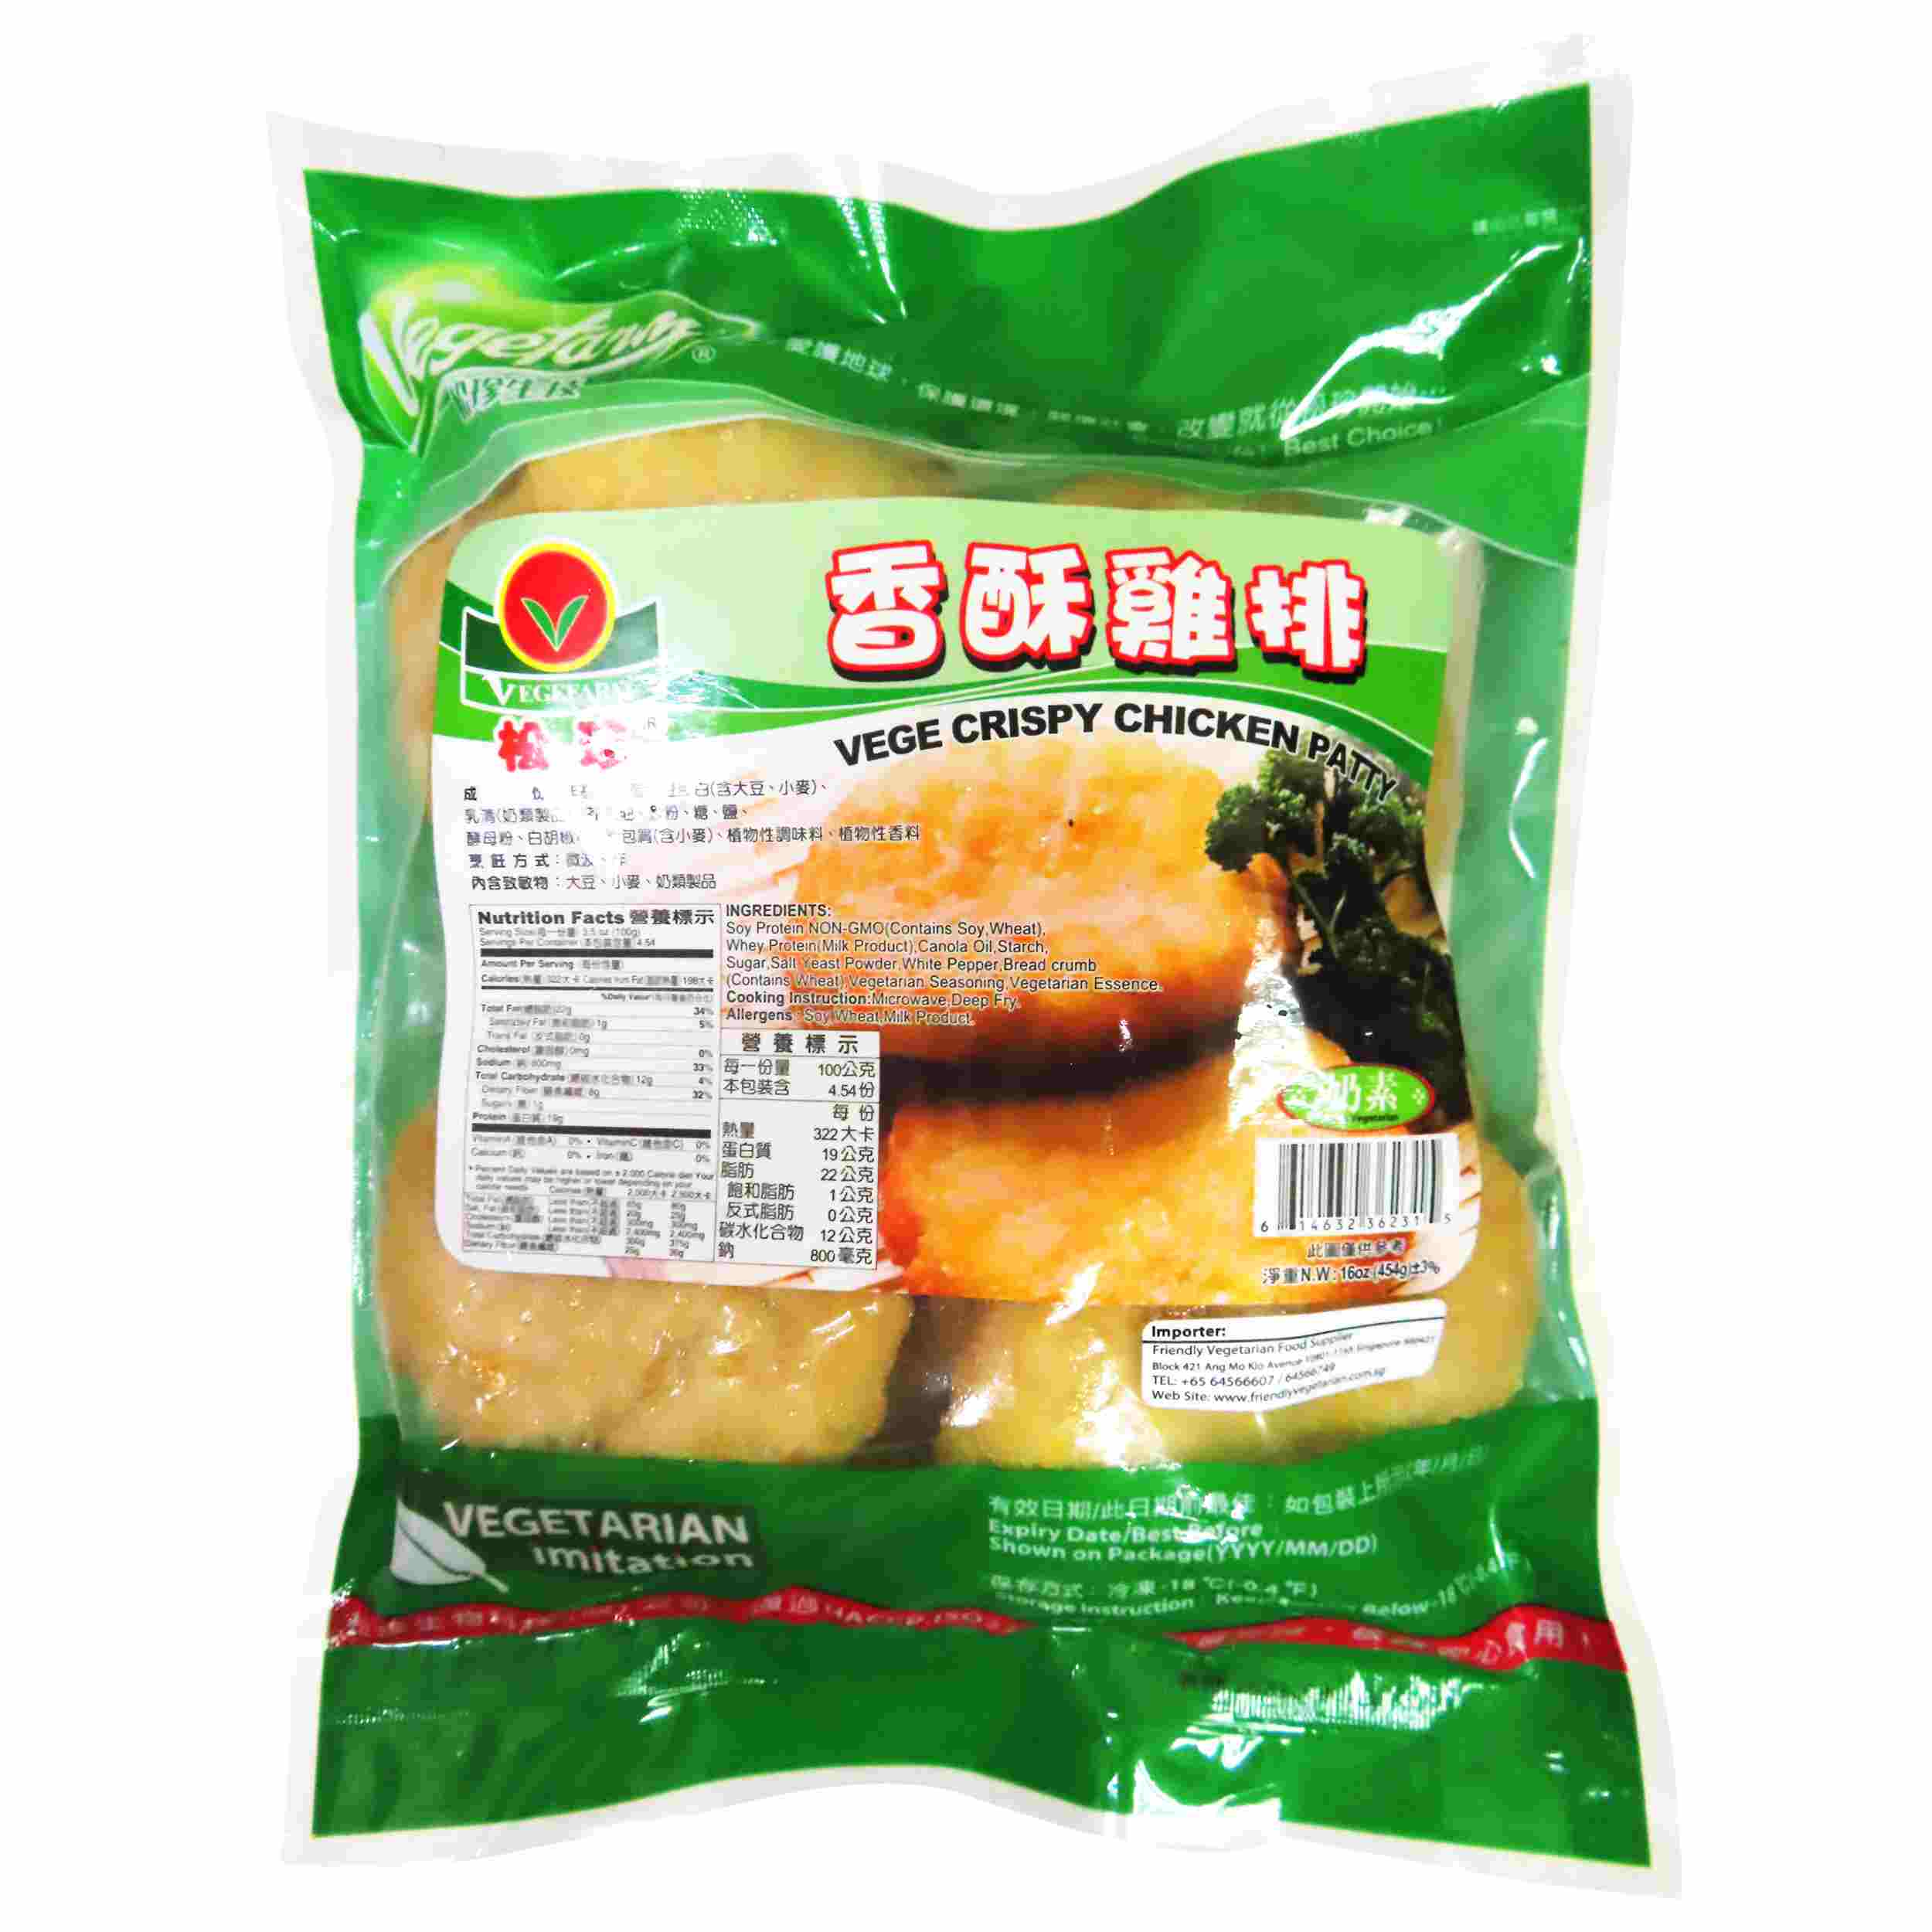 Image Vege Crispy Chicken Patty 松珍香酥鸡排 454grams